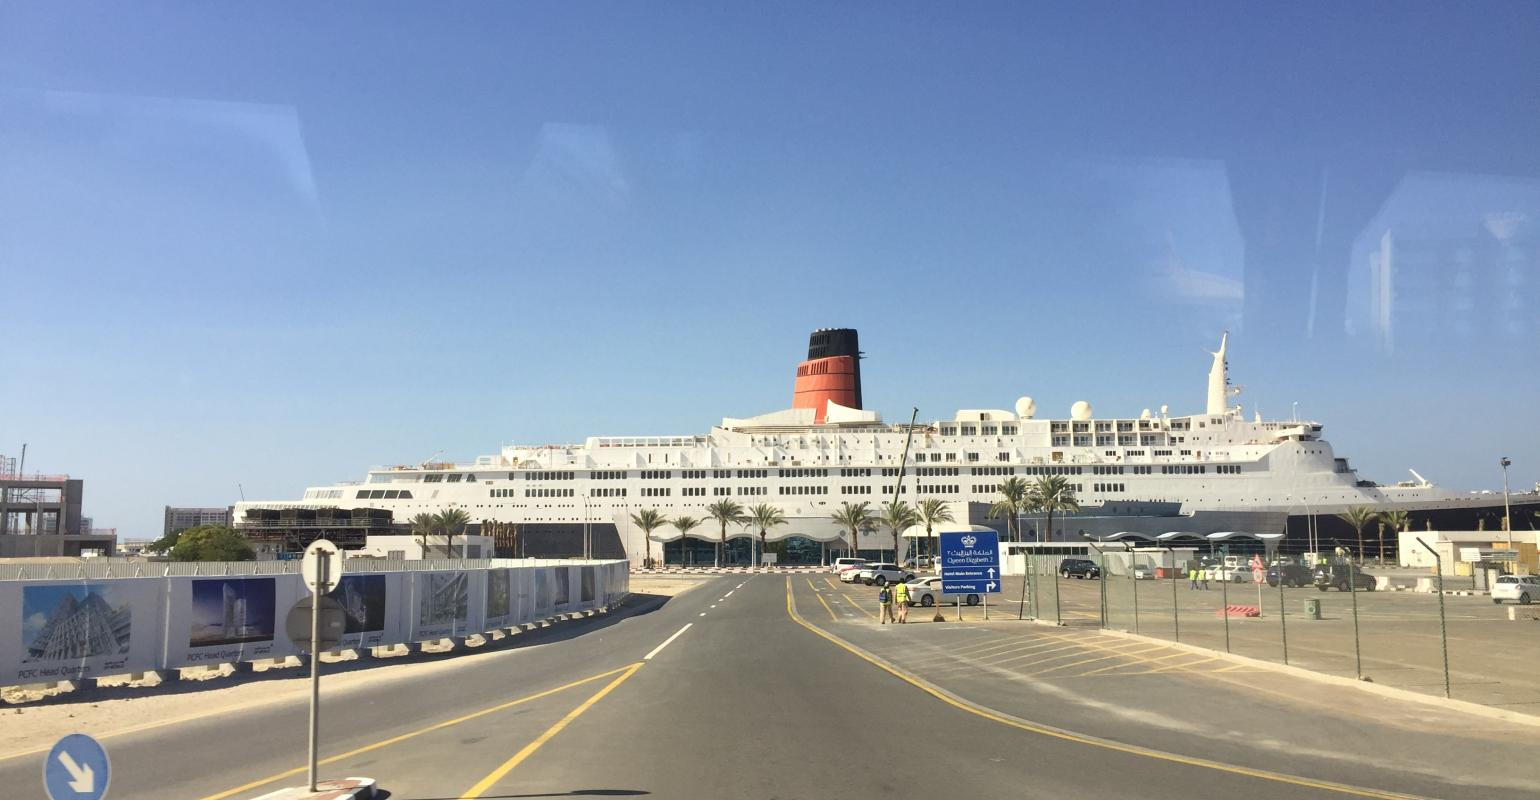 After Almost A Decade Sitting In Dubai Qe2 To Open As A Floating Hotel Seatrade Cruise Com